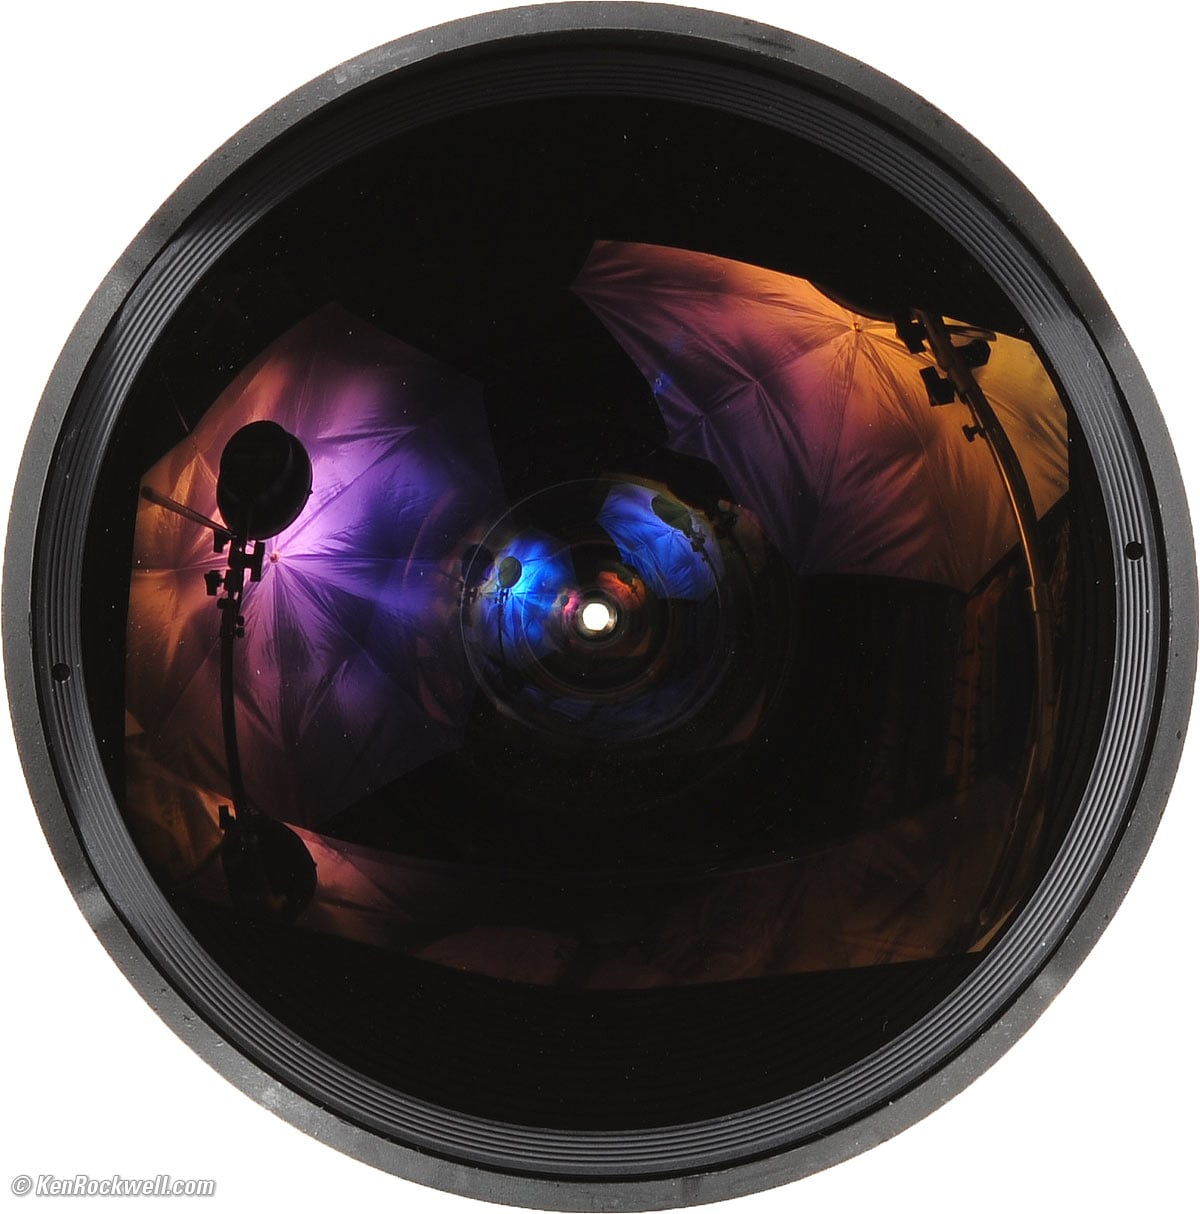 create 360 photos with fisheye lens